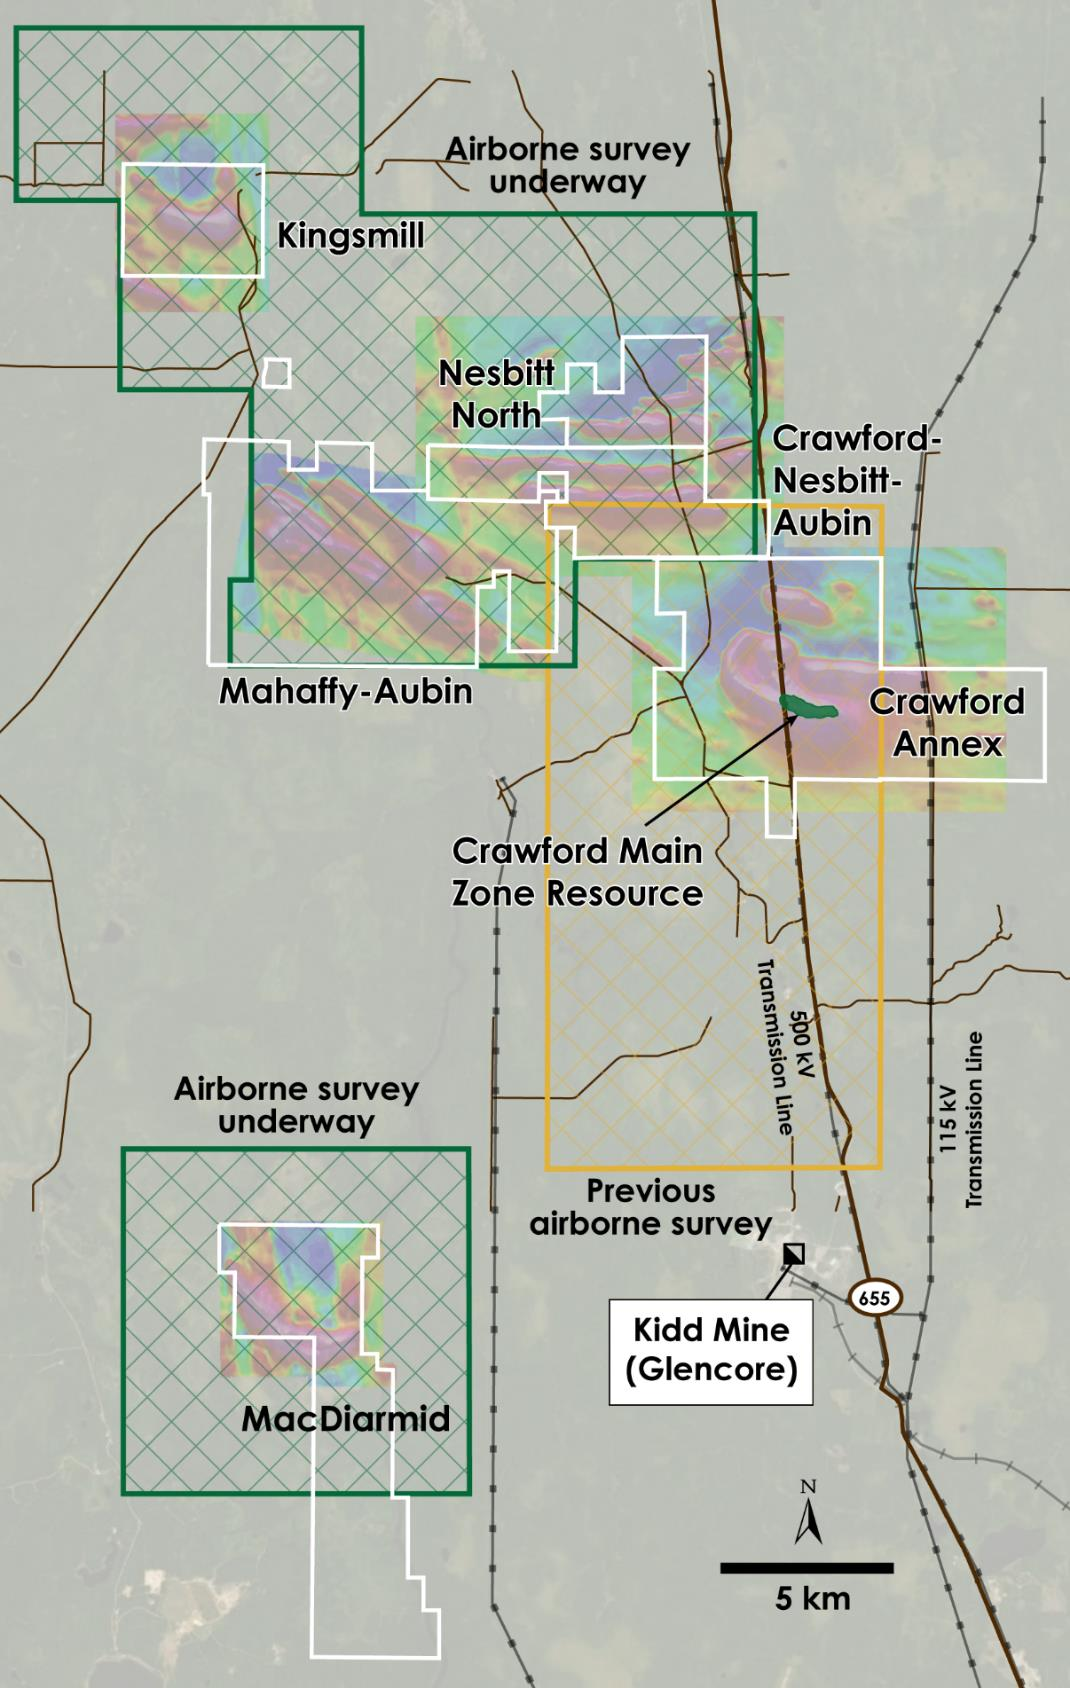 Canada Nickel Announces Airborne Geophysical Survey Underway on Recently Acquired Option Properties